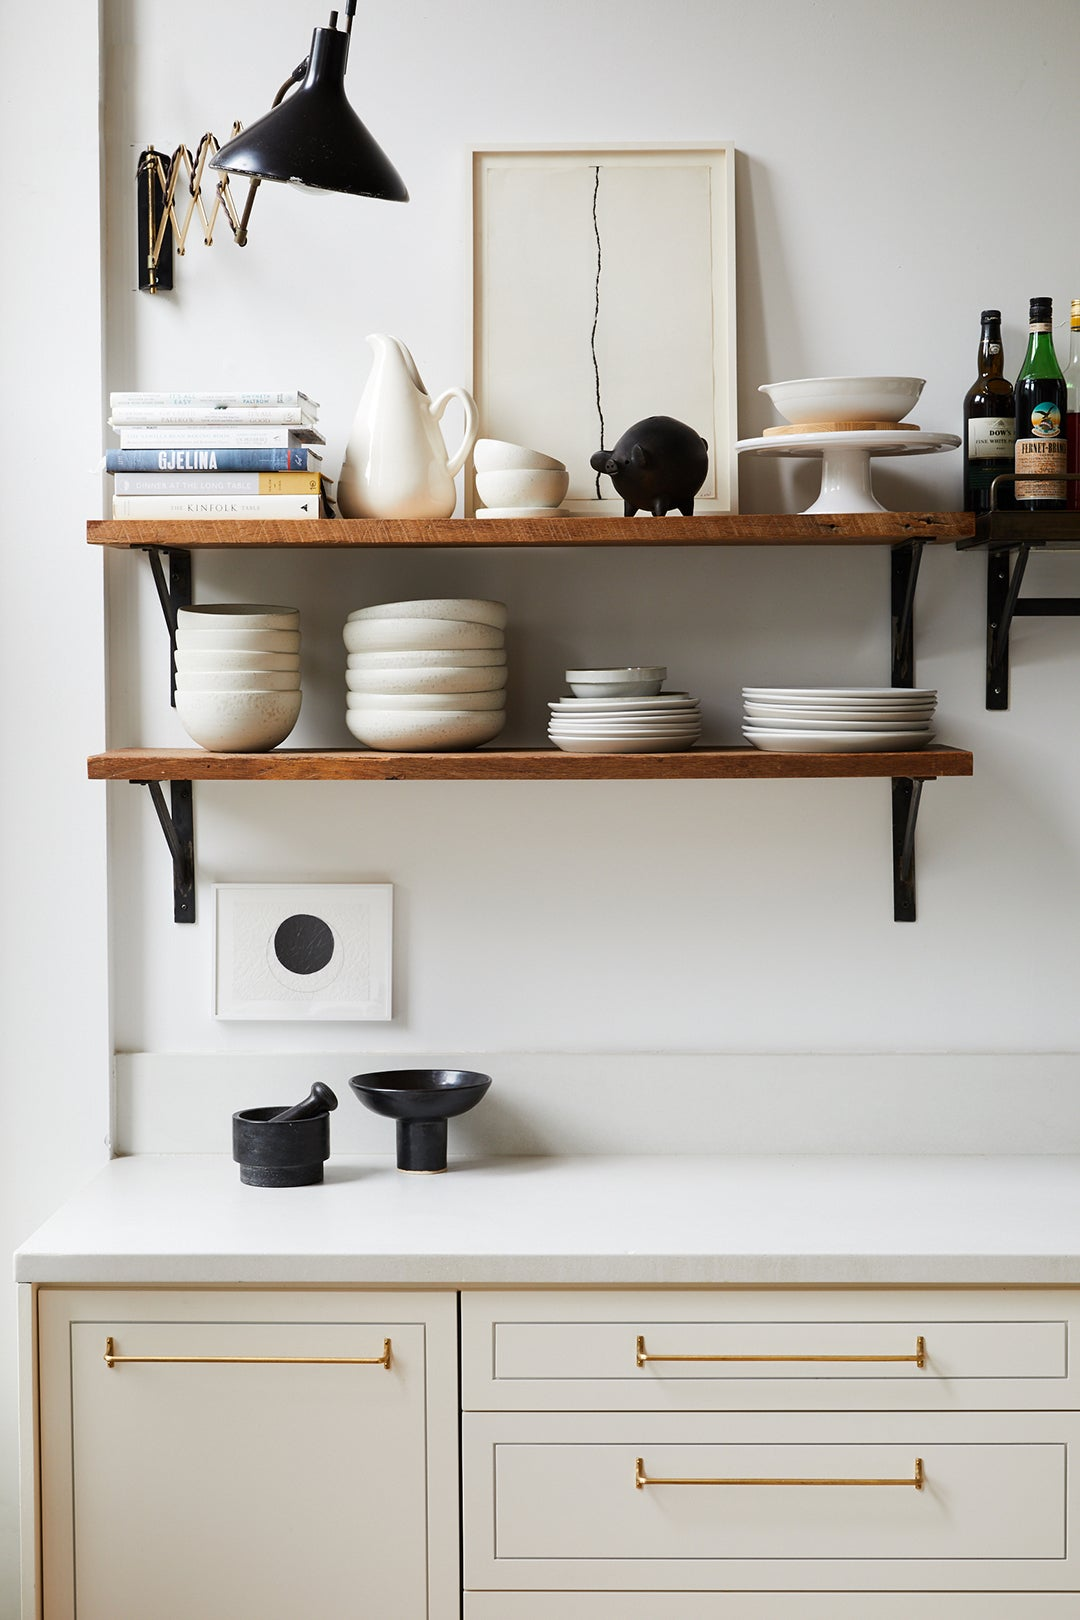 open shelves and cream colored cabinets